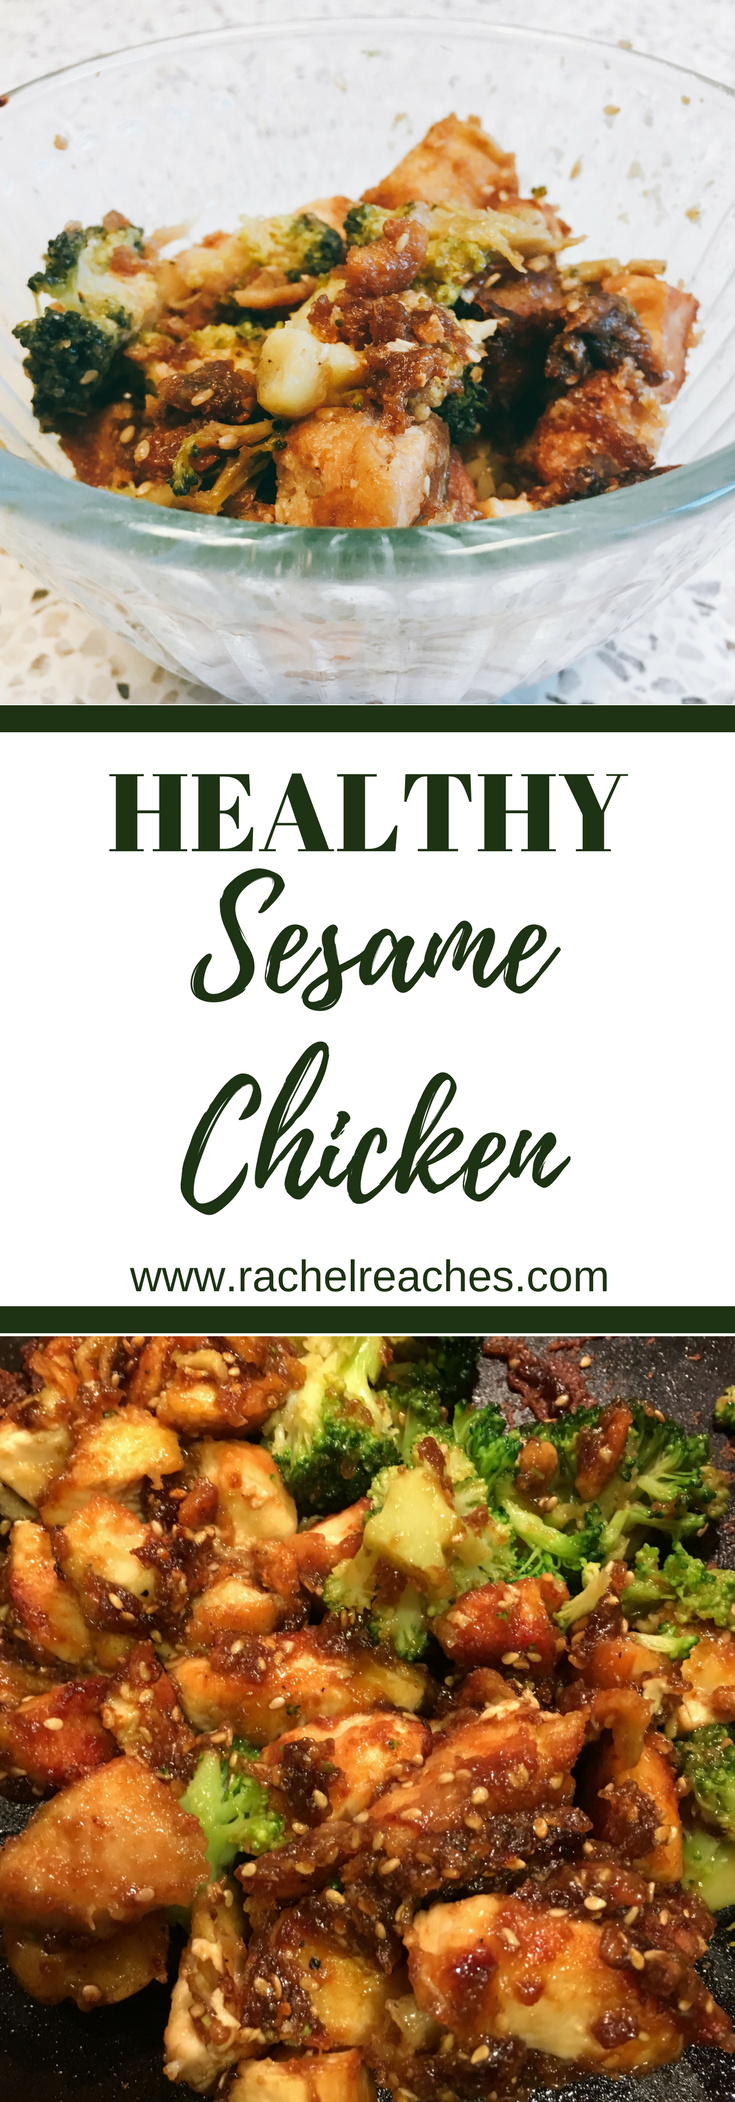 Sesame Chicken Pinterest Pin - Healthy Recipes.png